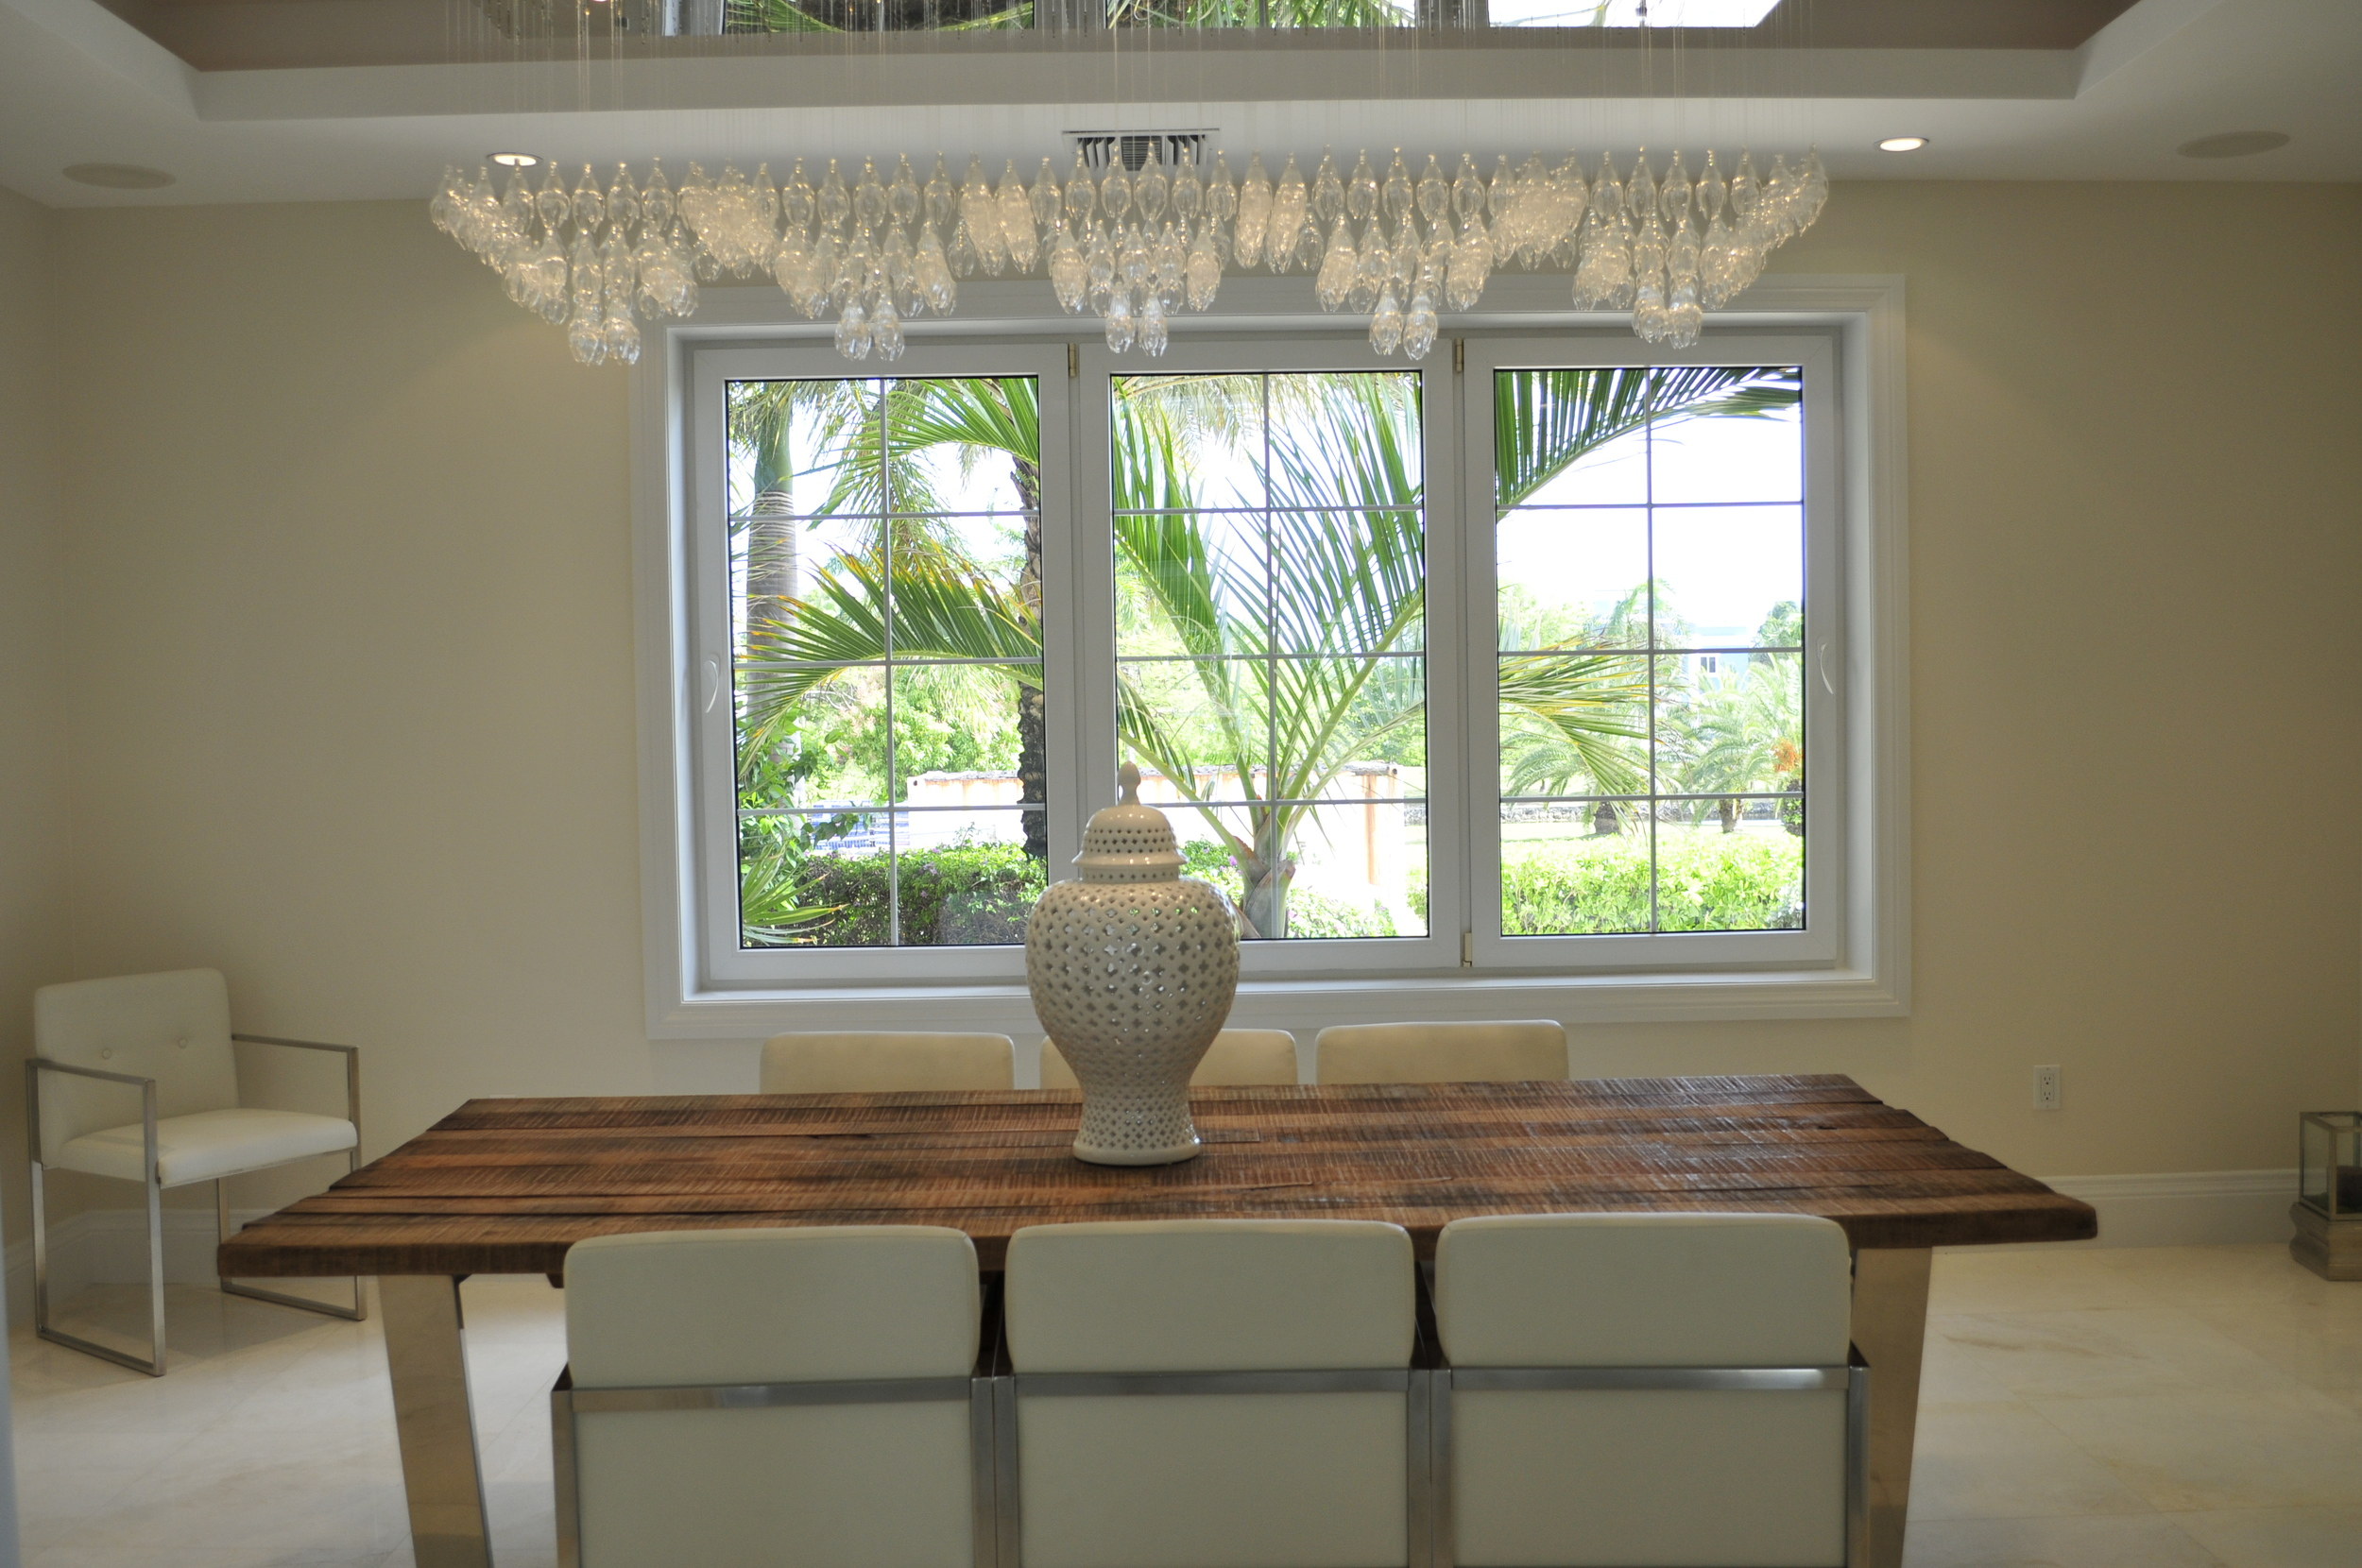 Custom jelly fish chandelier.JPG